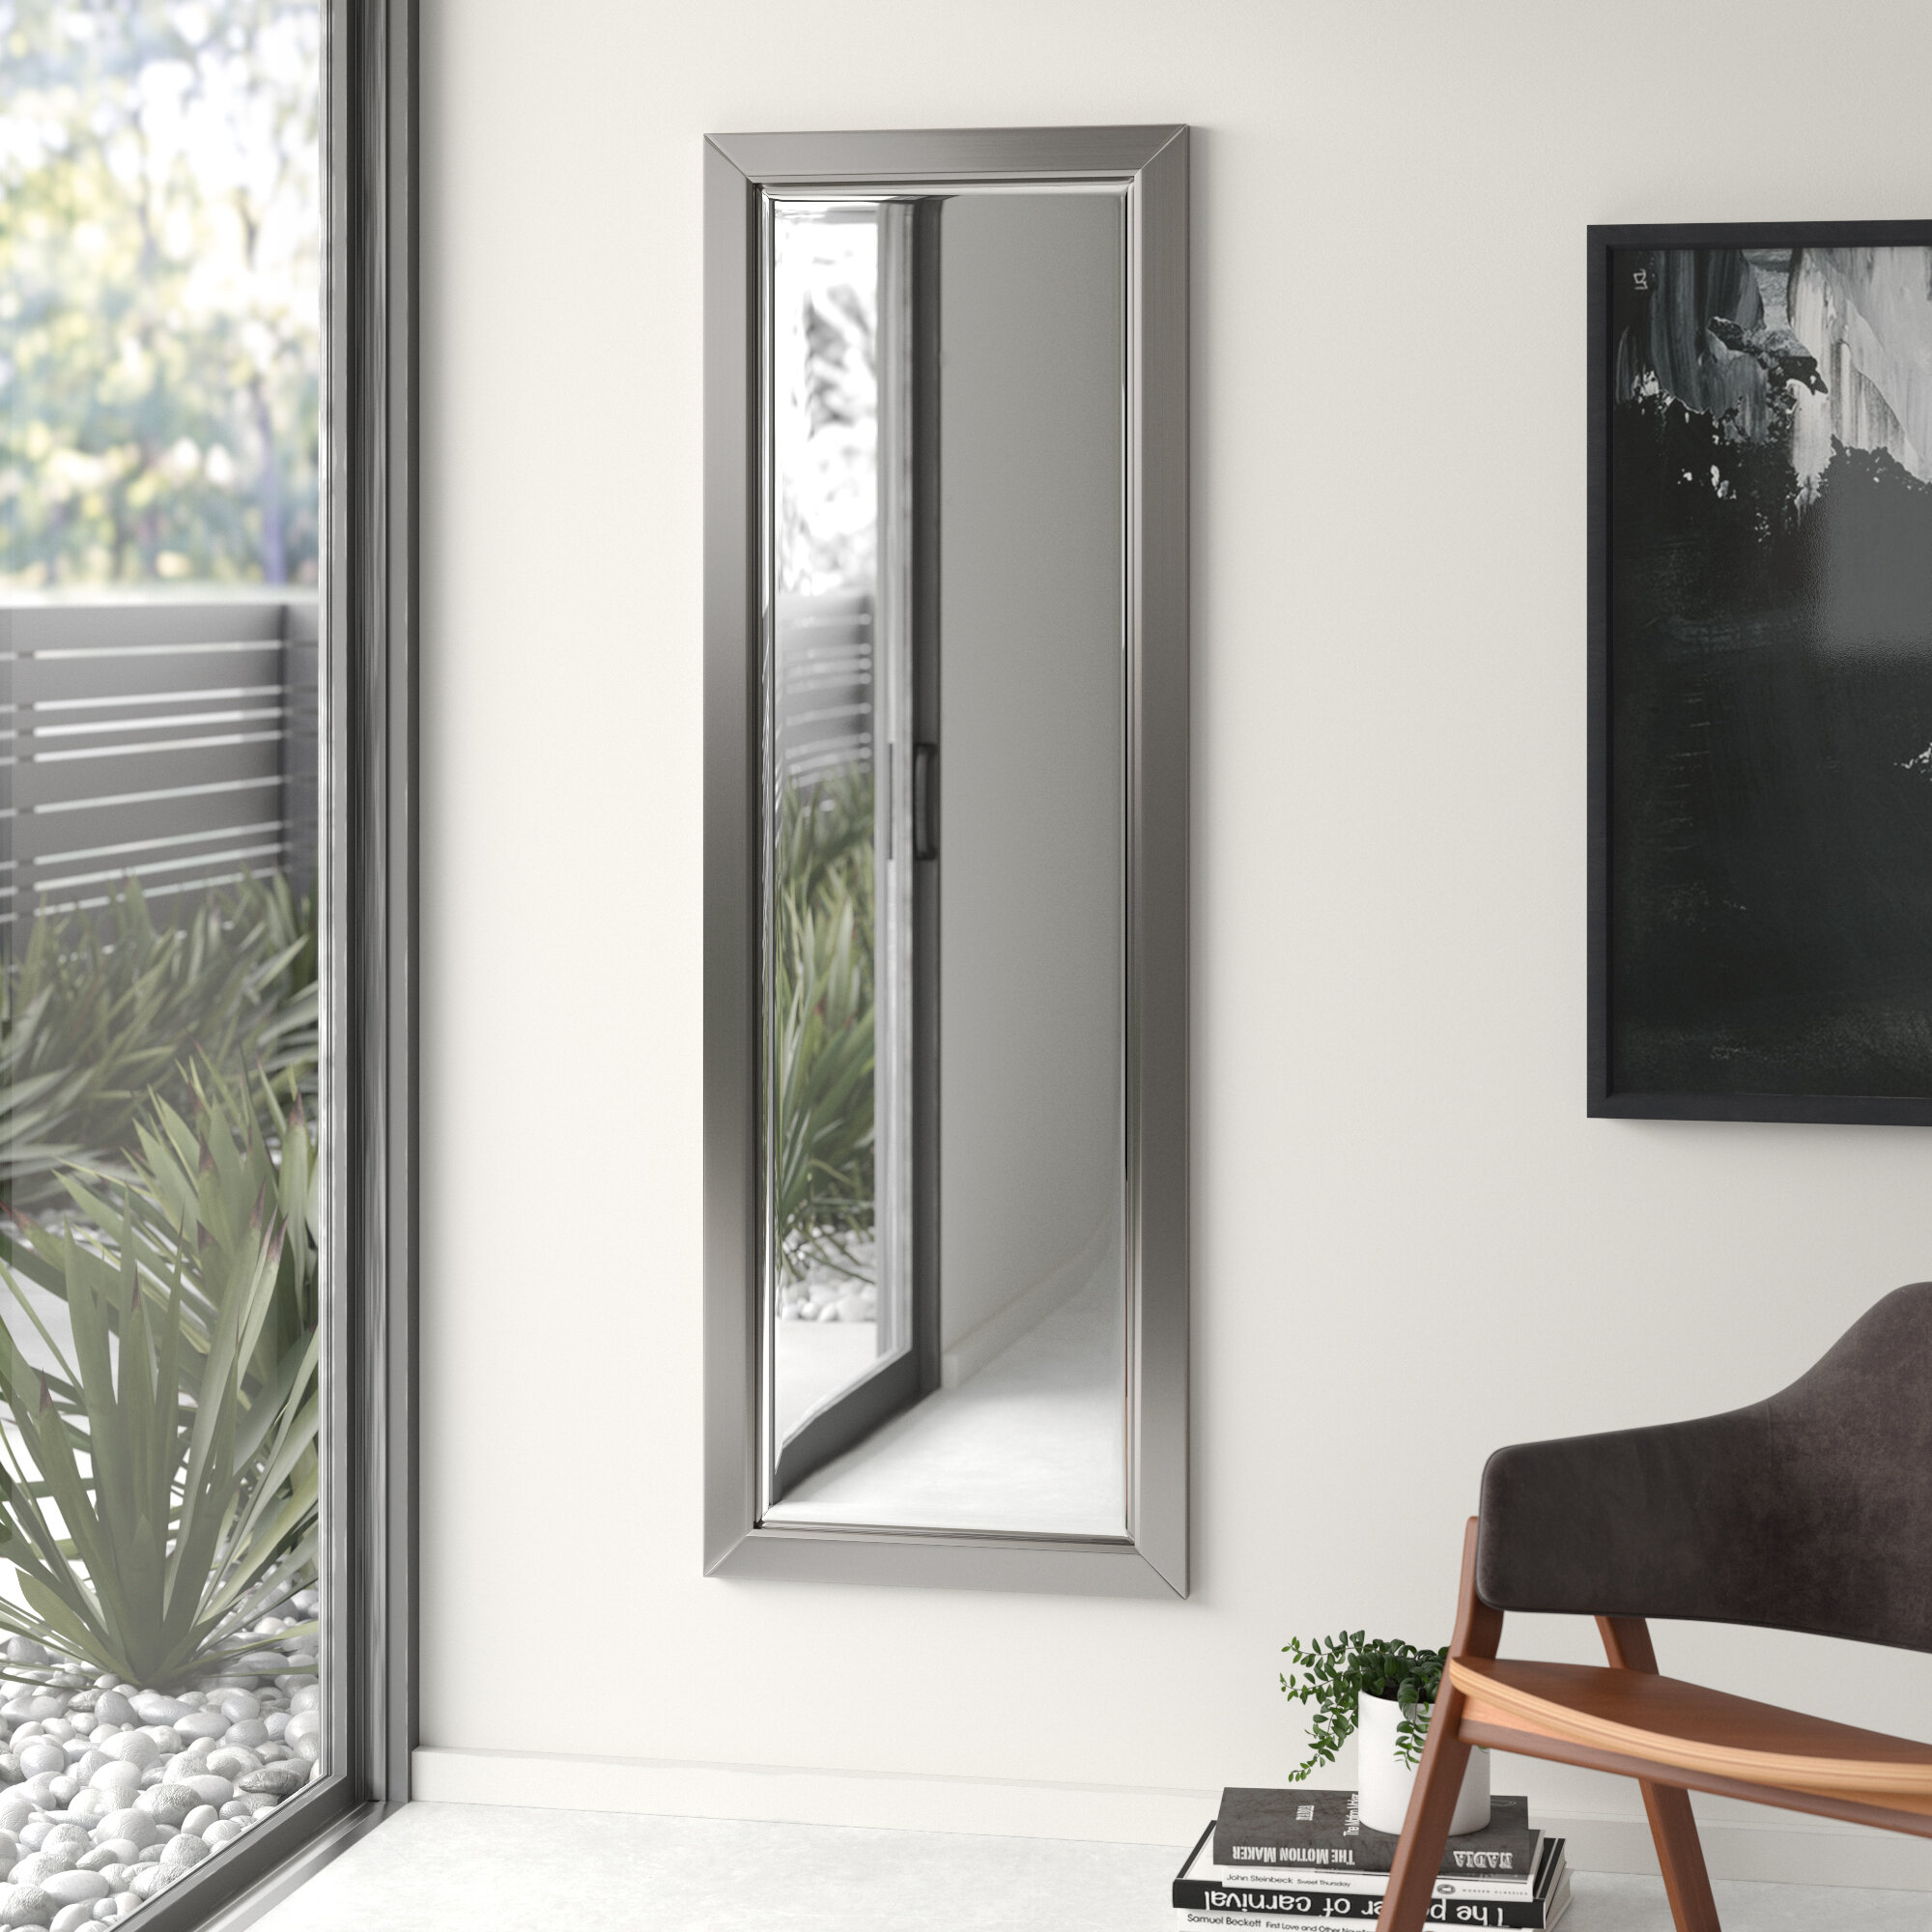 Edge Minimal Modern & Contemporary Full Length Body Mirror Throughout Sartain Modern & Contemporary Wall Mirrors (View 7 of 20)